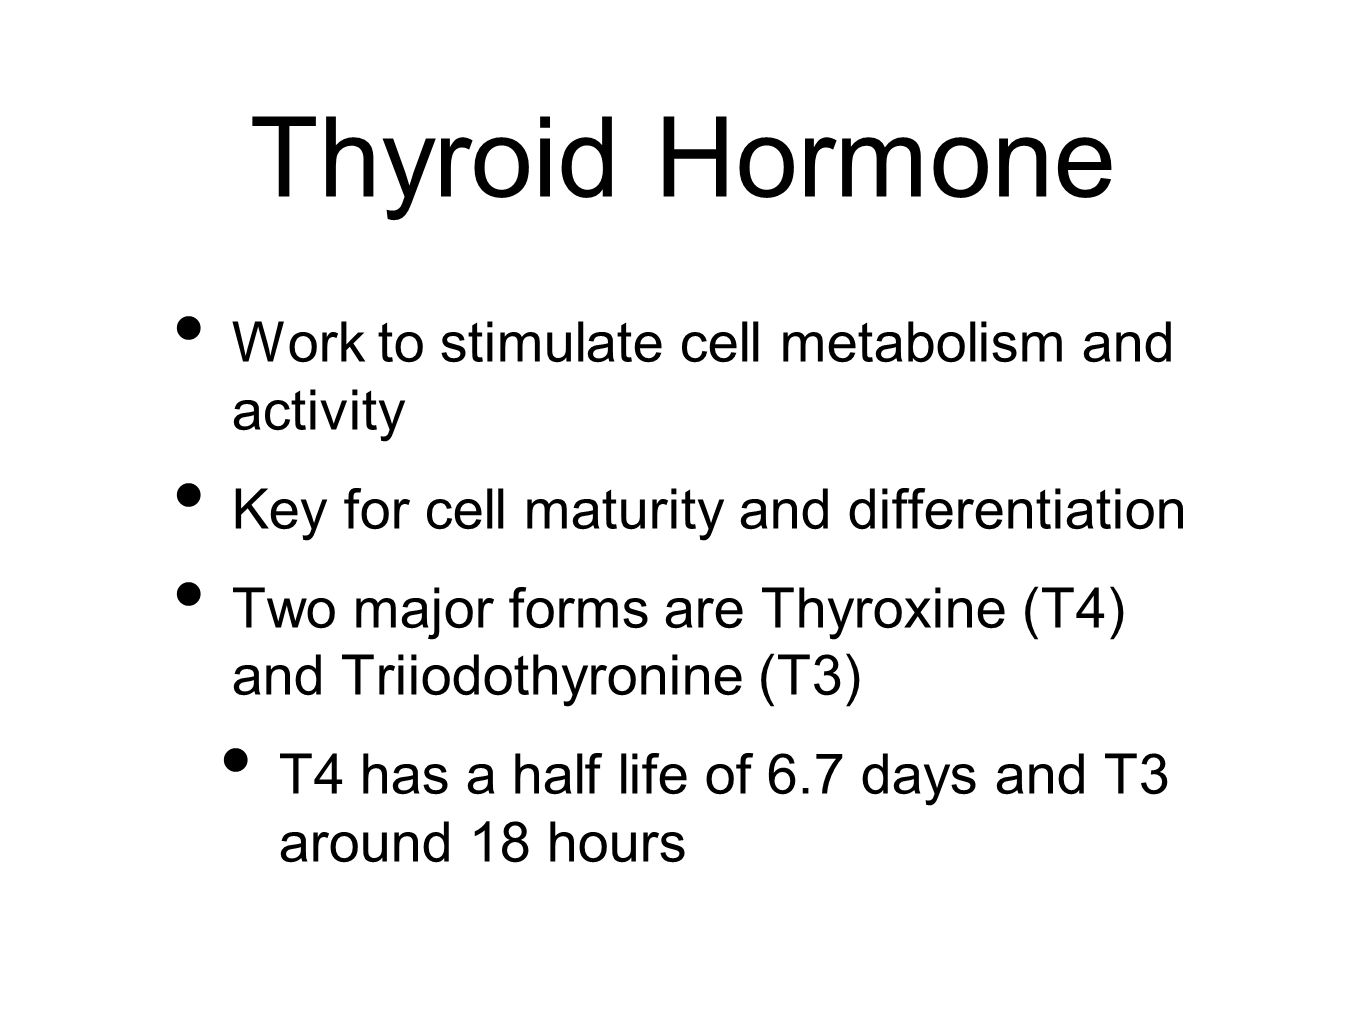 Thyroid Hormone Work to stimulate cell metabolism and activity